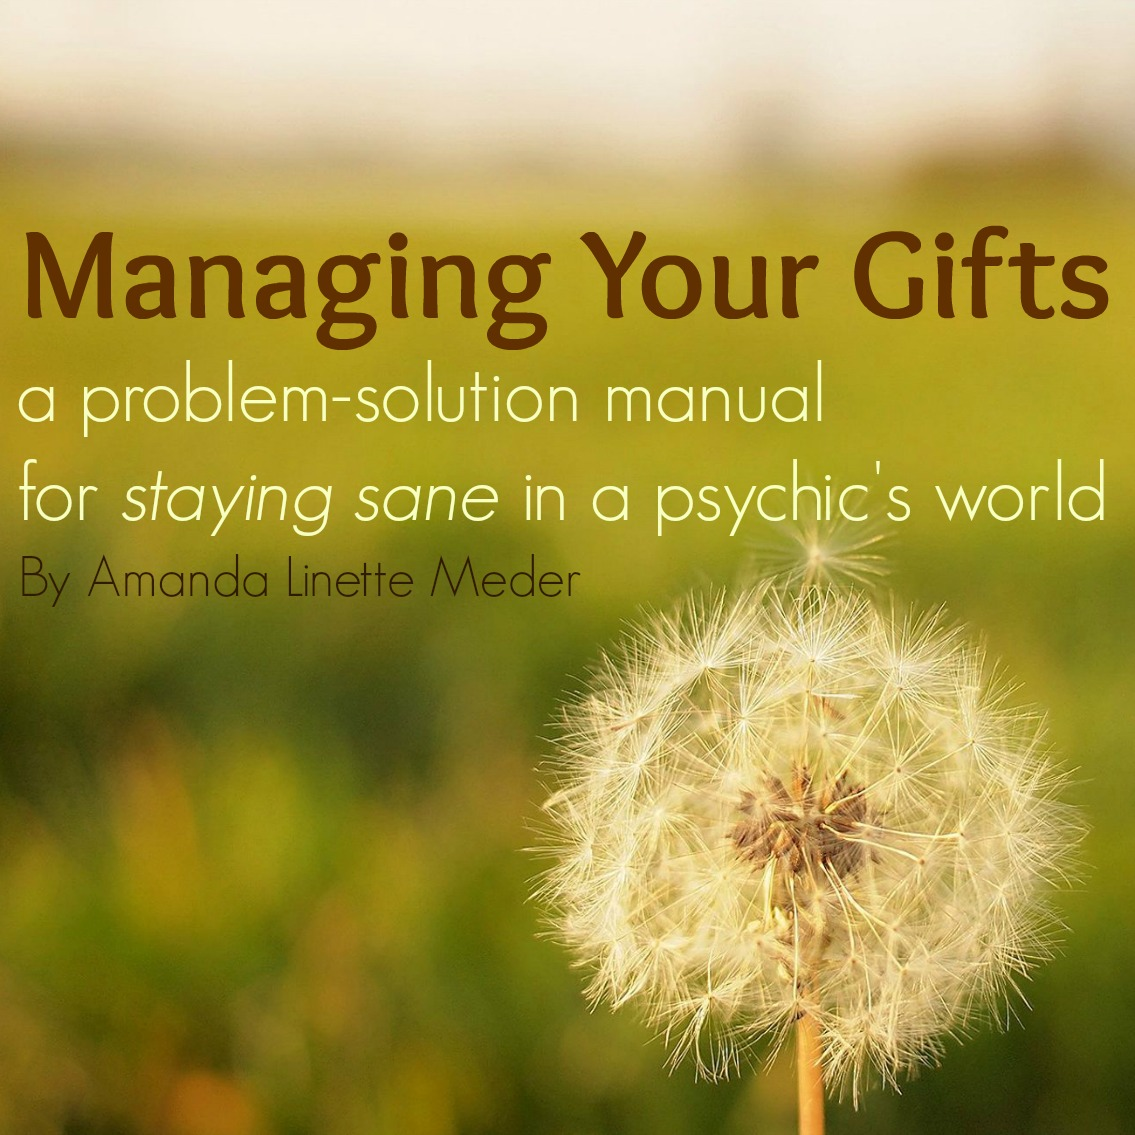 Managing Your Gifts eBook